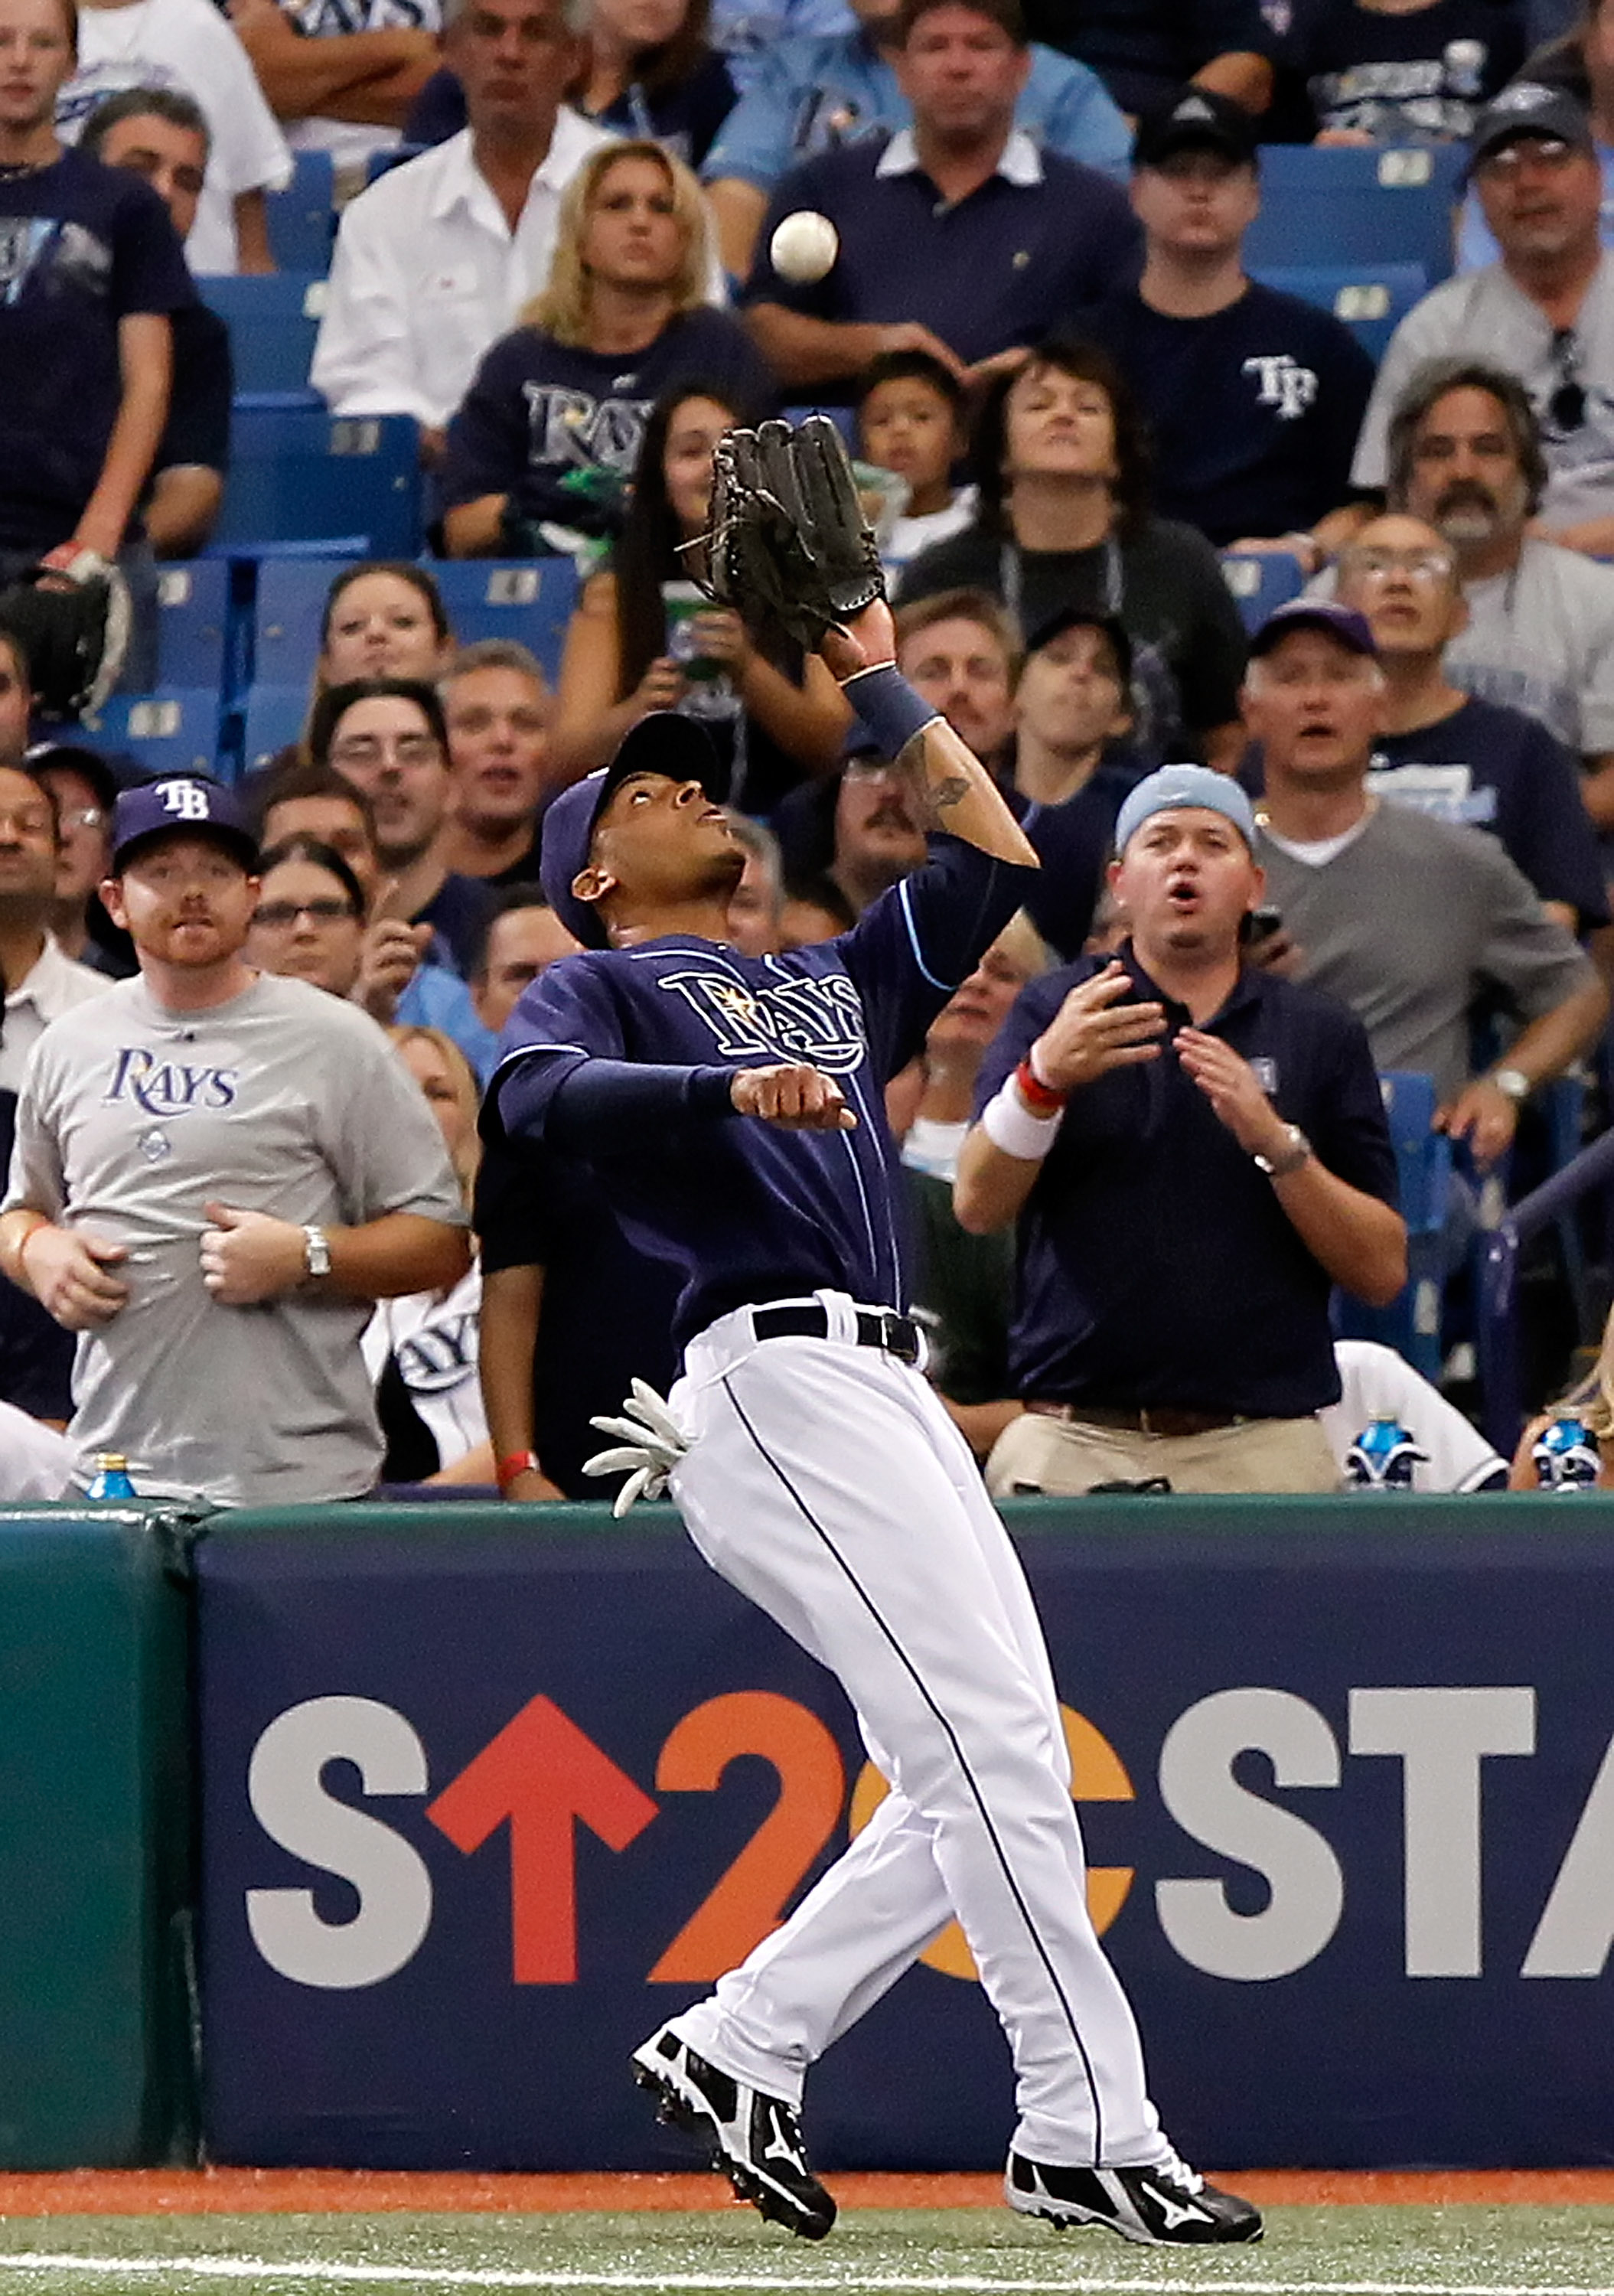 ST. PETERSBURG - OCTOBER 07:  Outfielder Desmond Jennings #27 of the Tampa Bay Rays catches a foul ball against the Texas Rangers during Game 2 of the ALDS at Tropicana Field on October 7, 2010 in St. Petersburg, Florida.  (Photo by J. Meric/Getty Images)